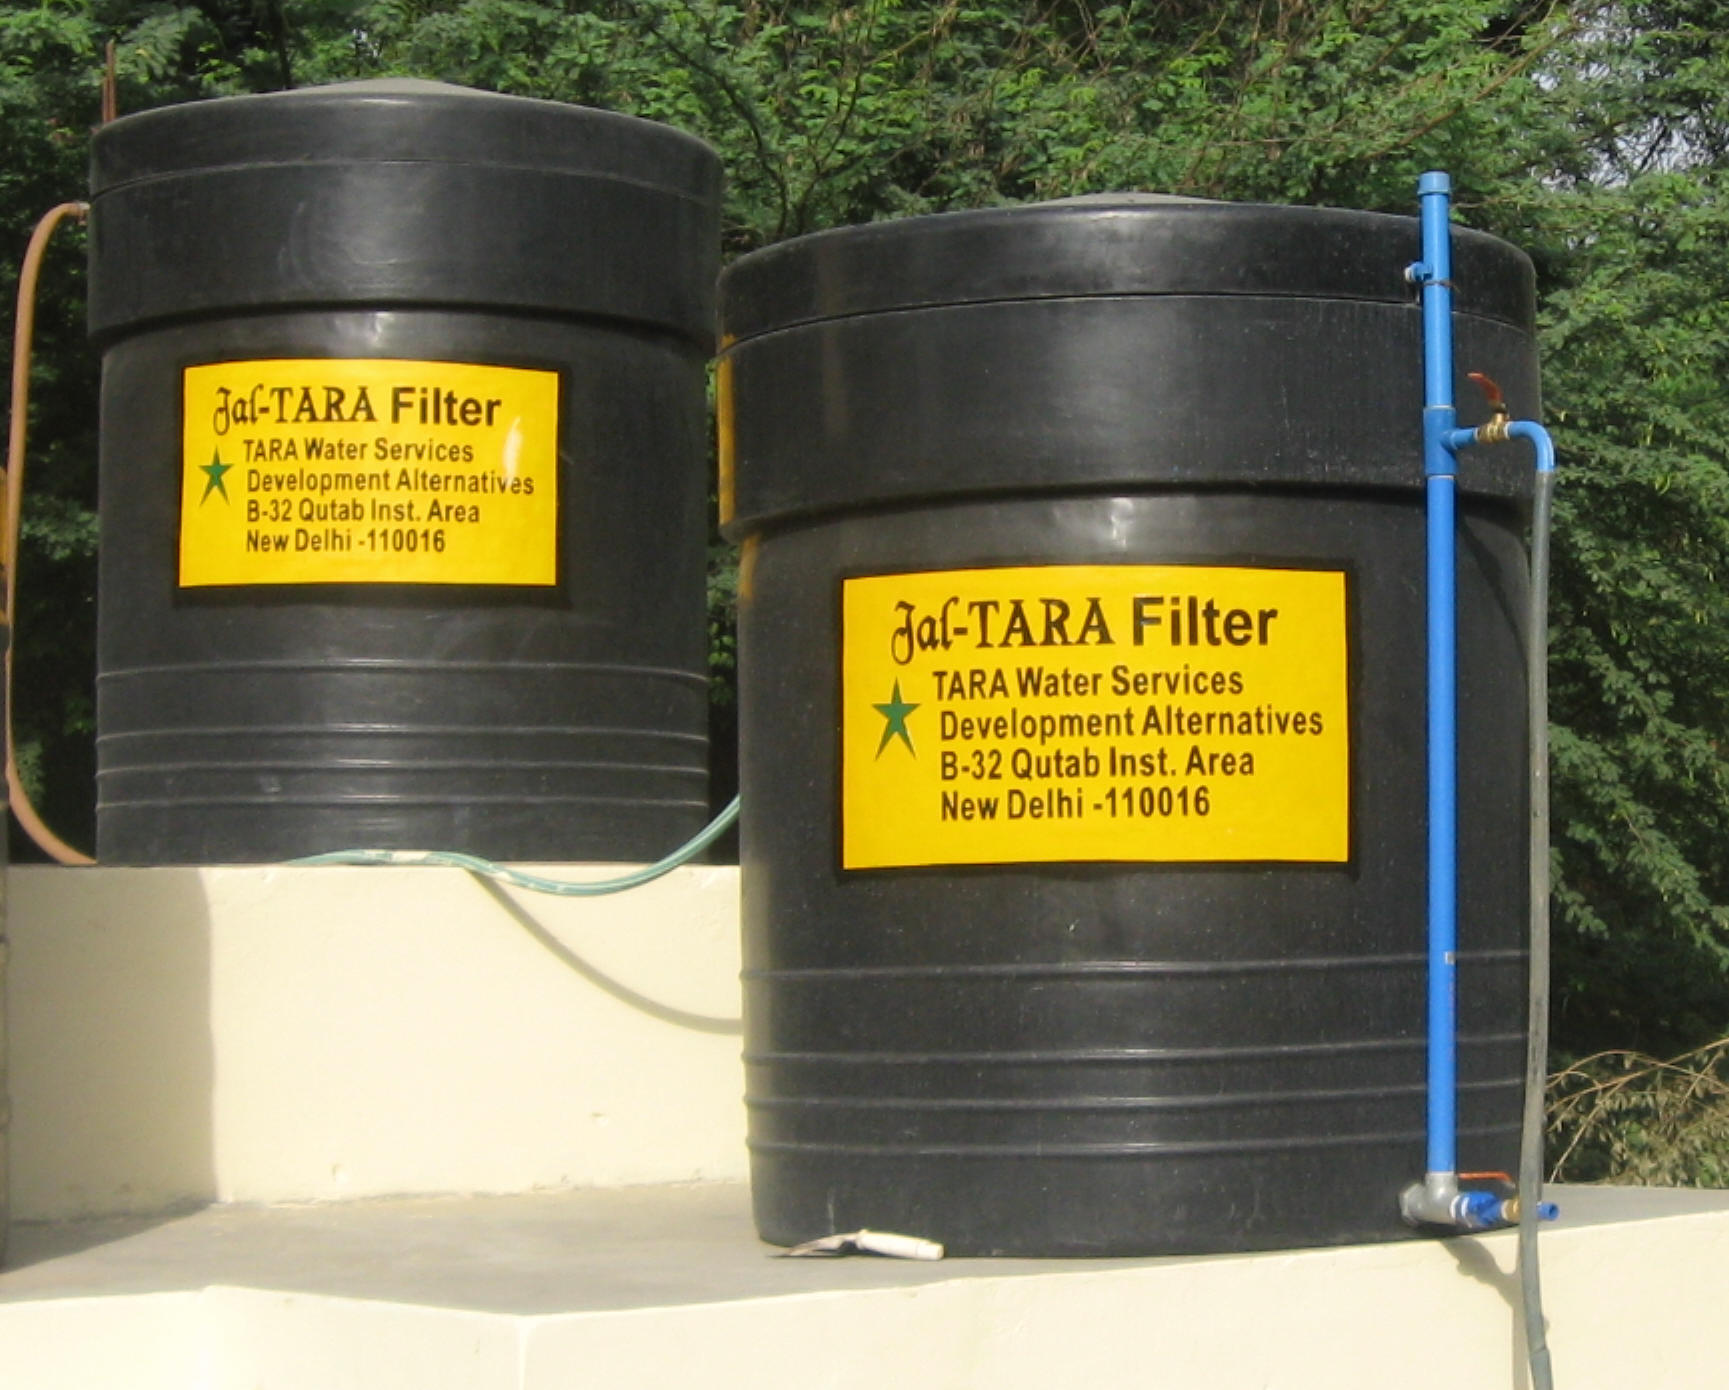 Griswold Sand Filters provide factory assembled water filtration of the permanent media type for removing contaminants from cooling towers, condensers,